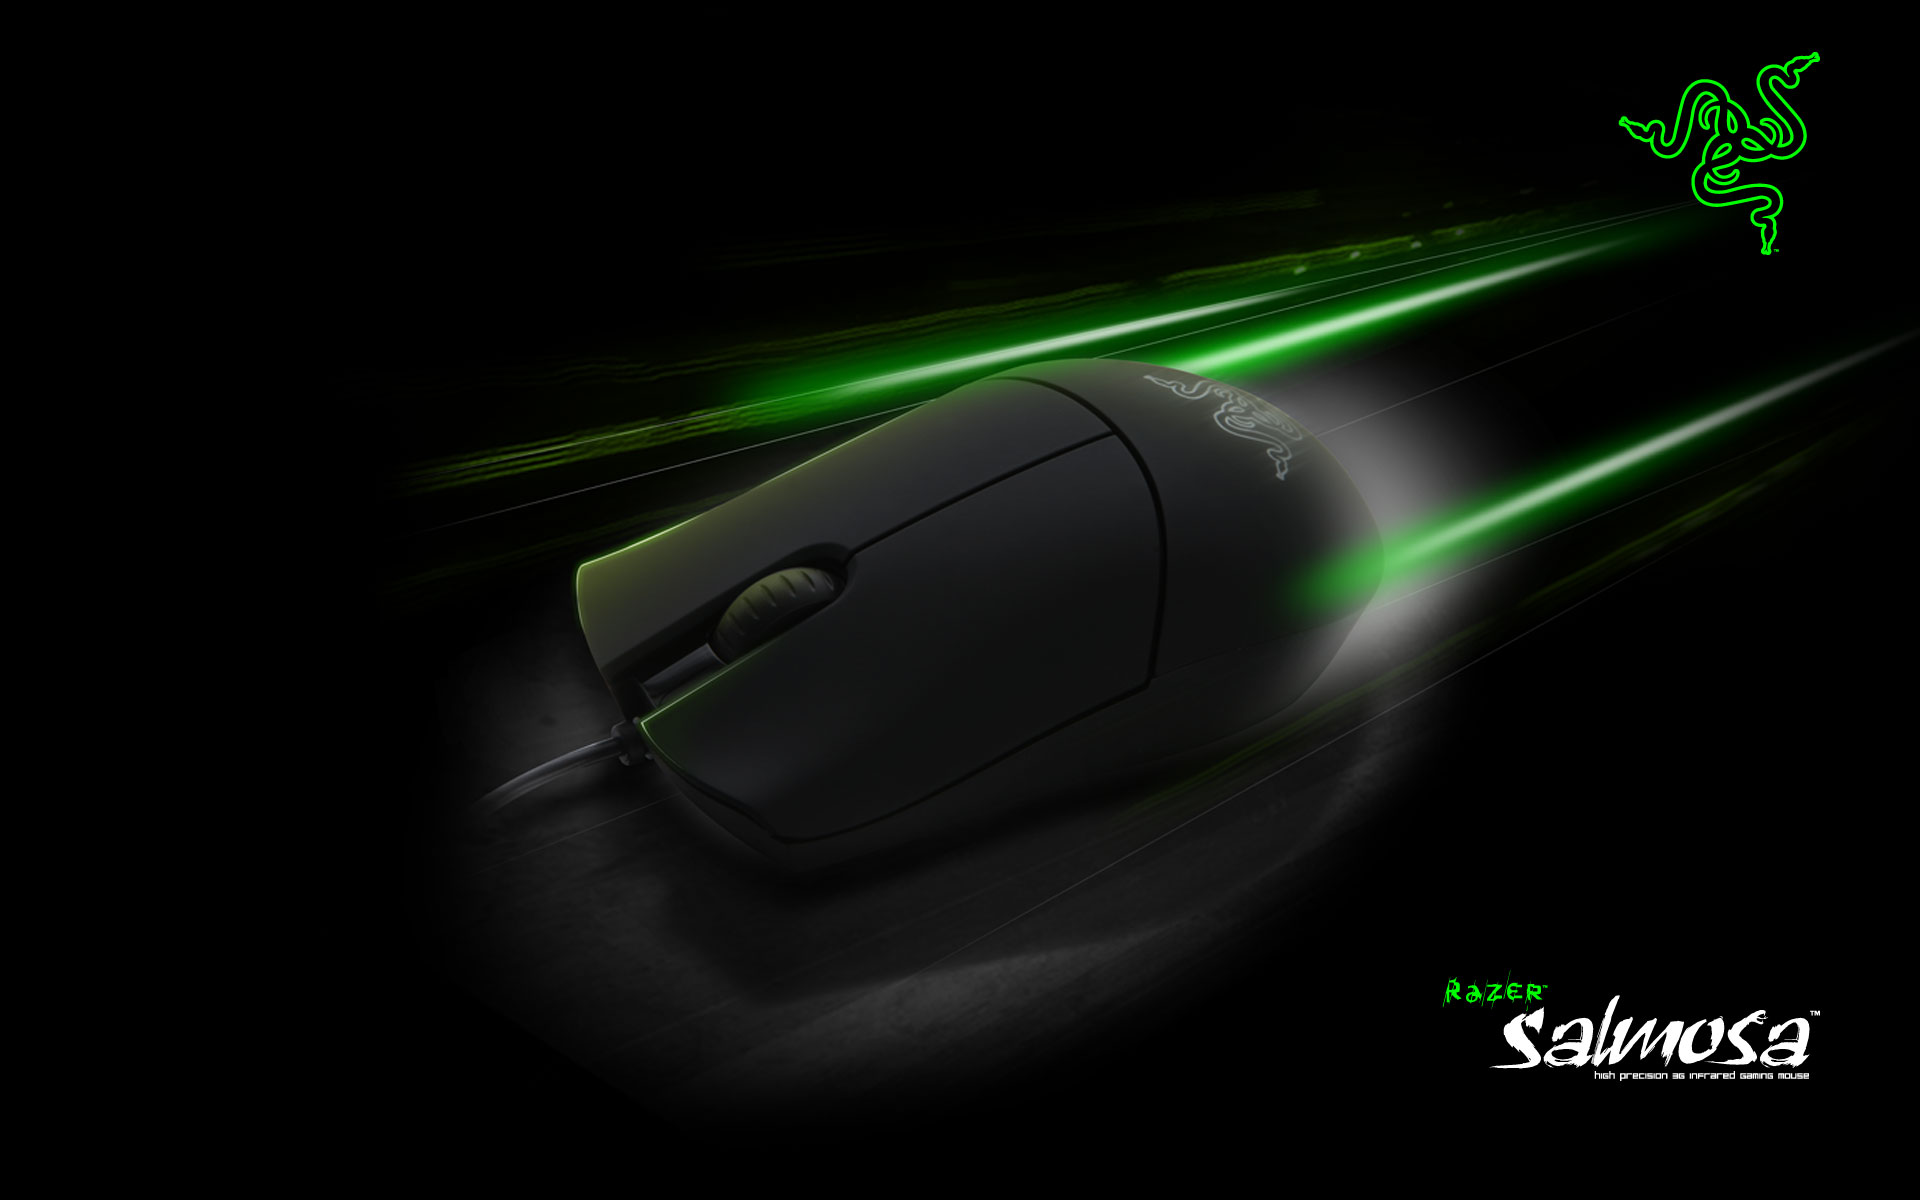 Computers   Razer Salmosa Gaming Mouse   Desktop 1920x1200